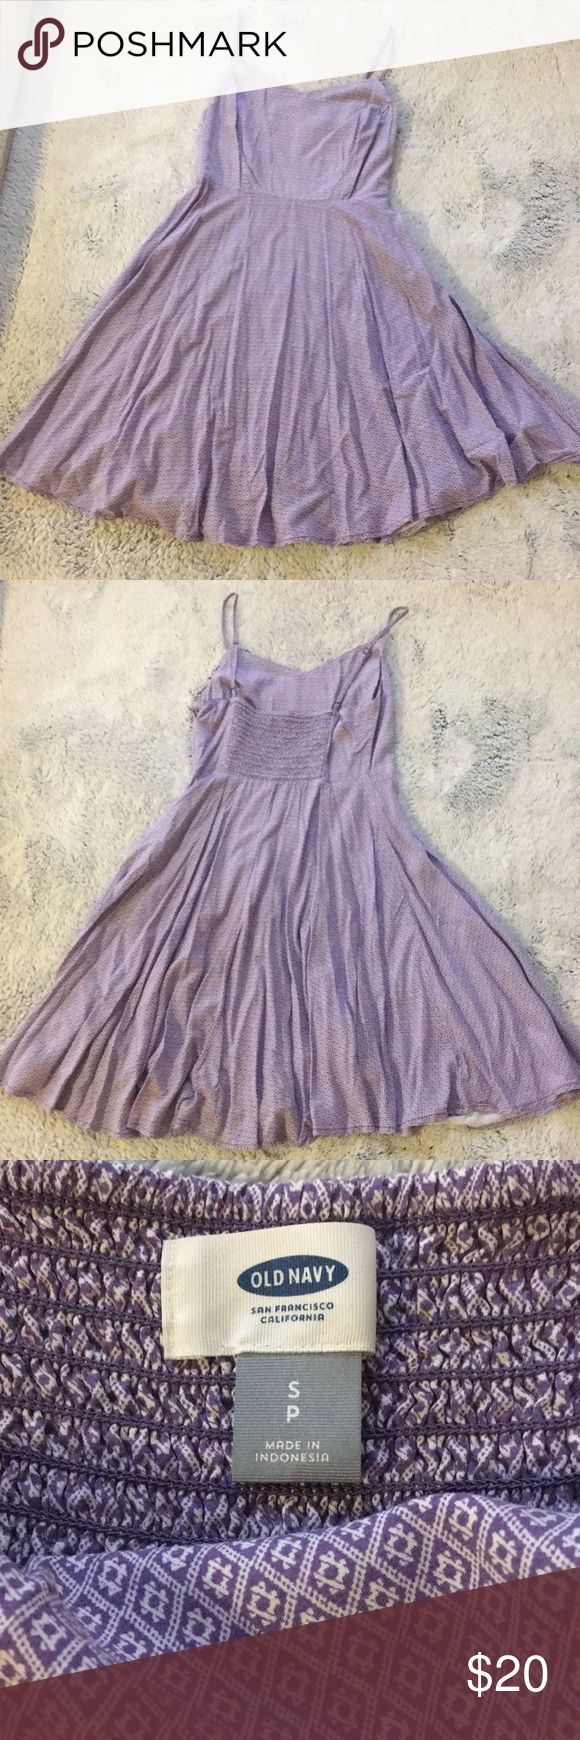 Purple sundress In excellent condition. Only worn one time. It's a very feminine purple color and it has a side zipper and clasp. It hits an inch or two above the knee (I'm 5'2). Old Navy Dresses Midi